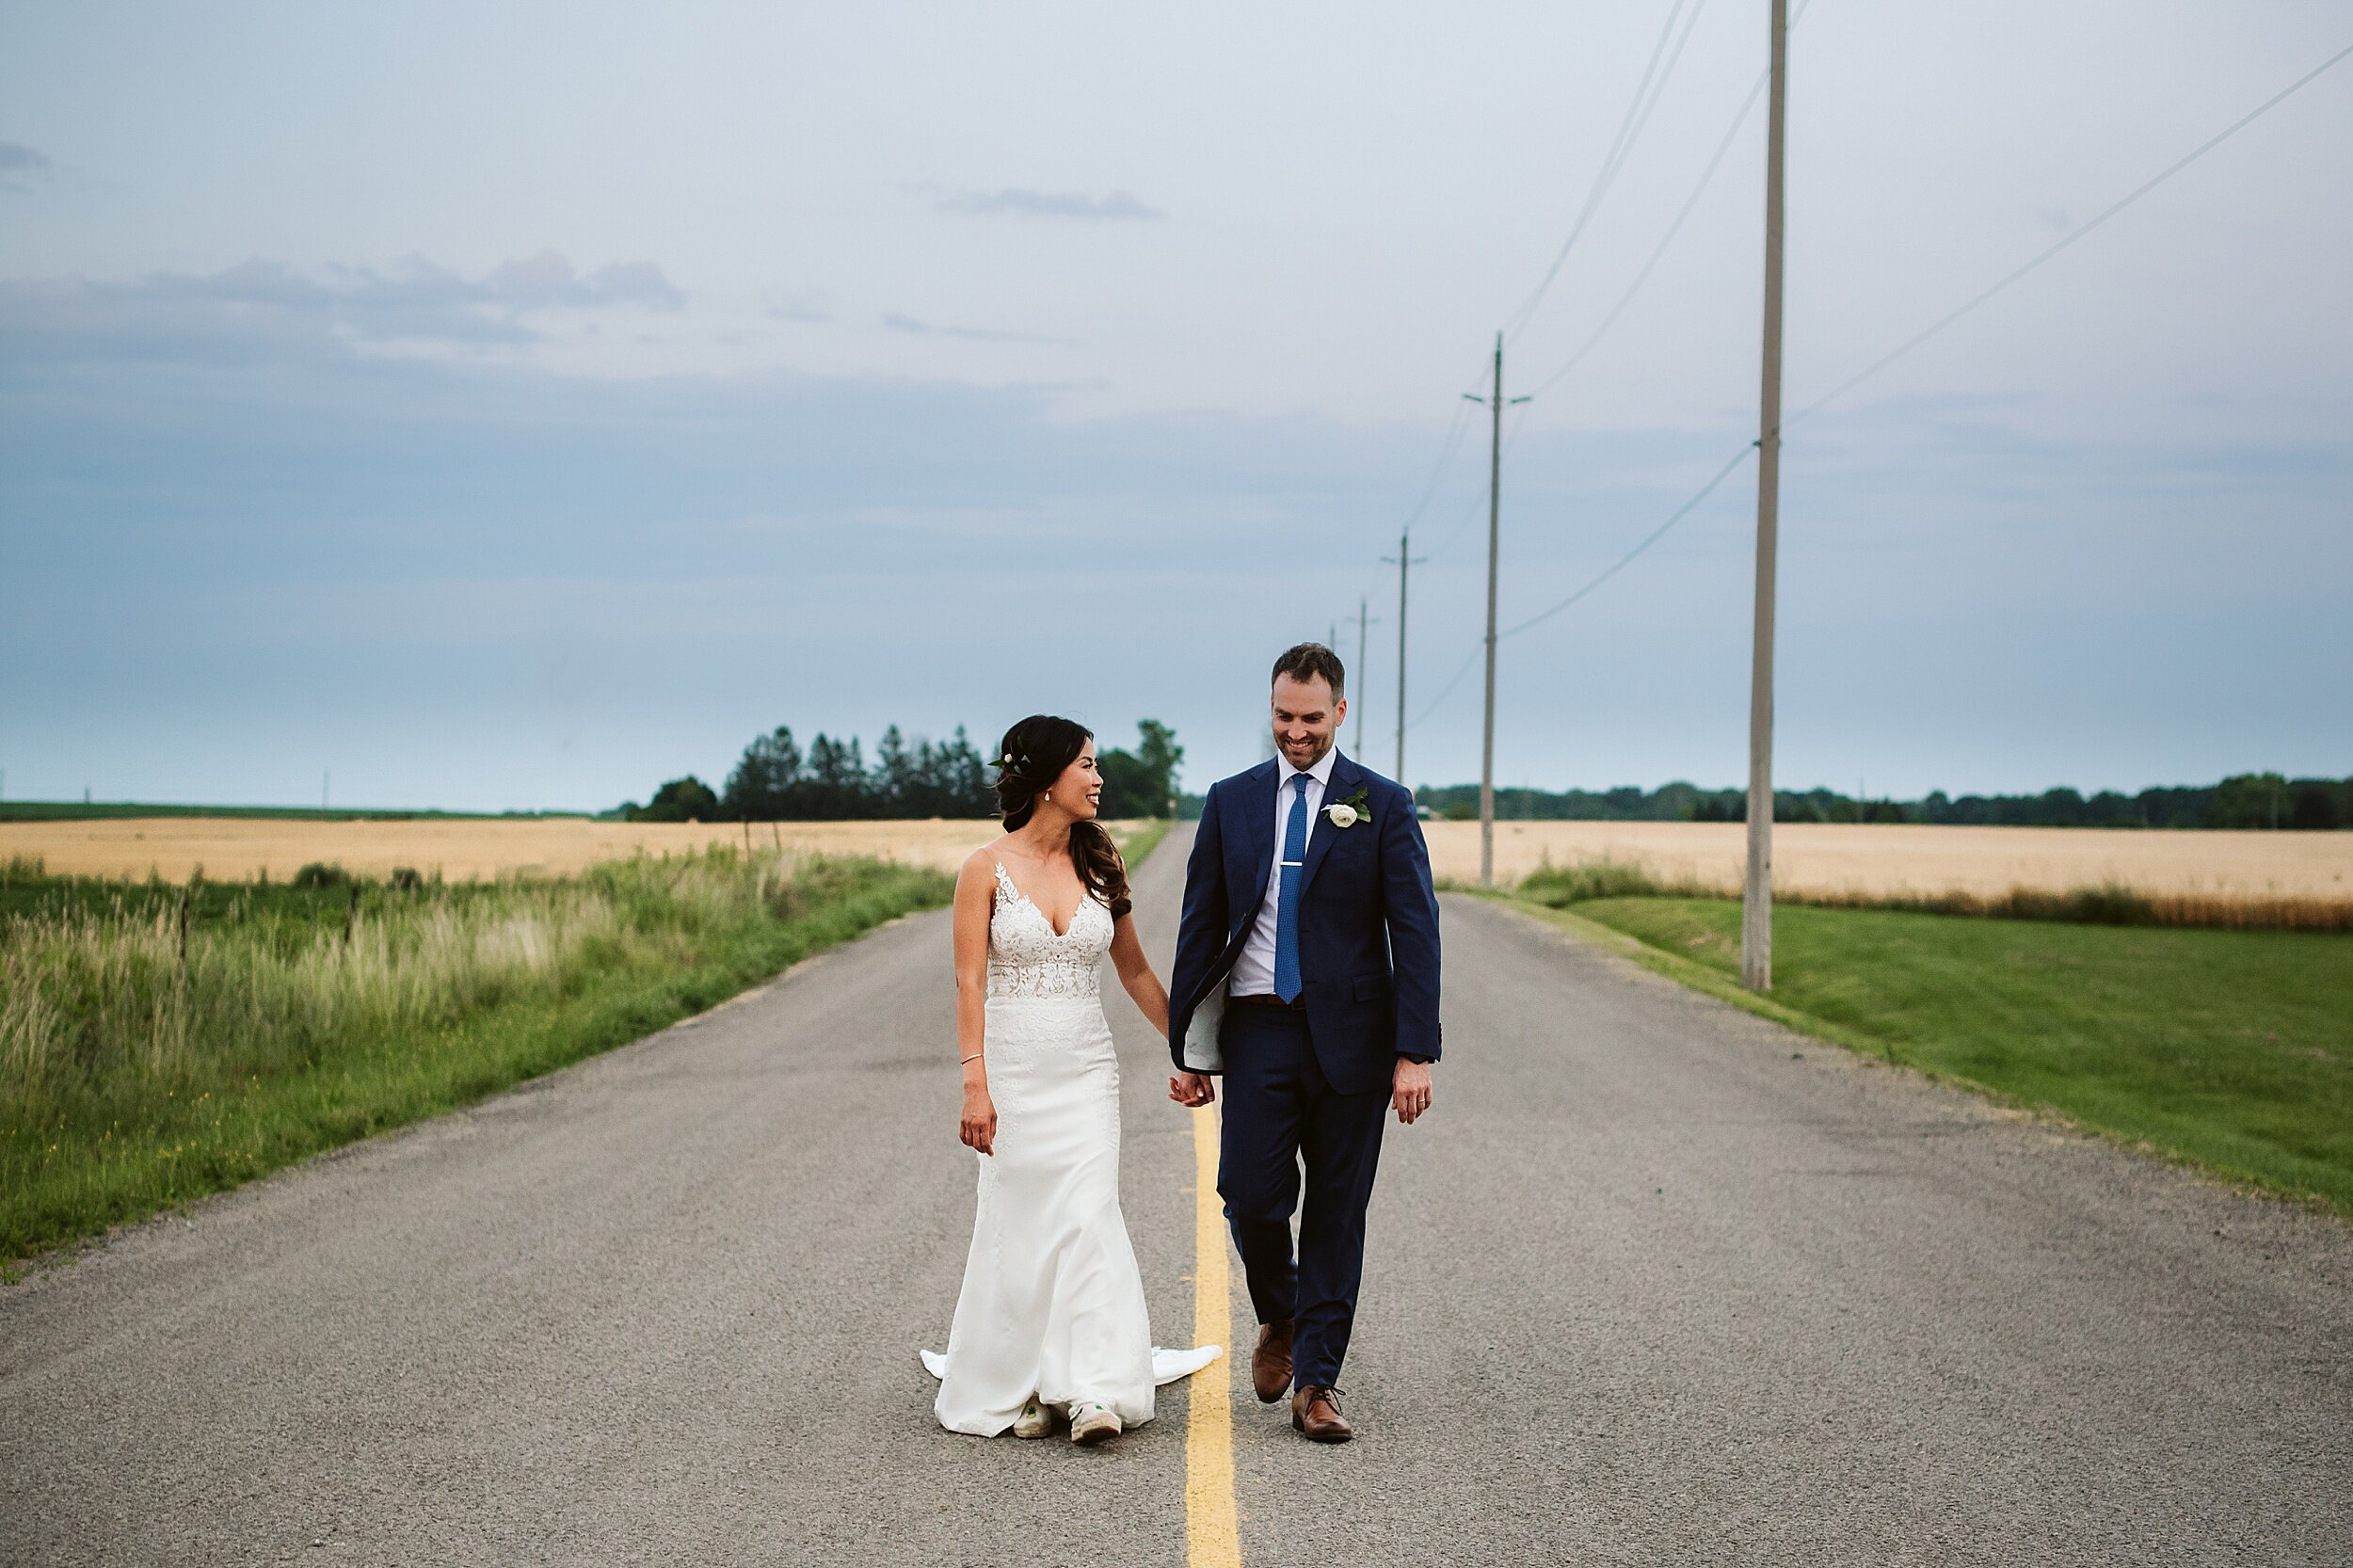 Glen_Drummon_Farm_Wedding_Toronto_Photographers_Fox_Photography_Dyments_0065.jpg